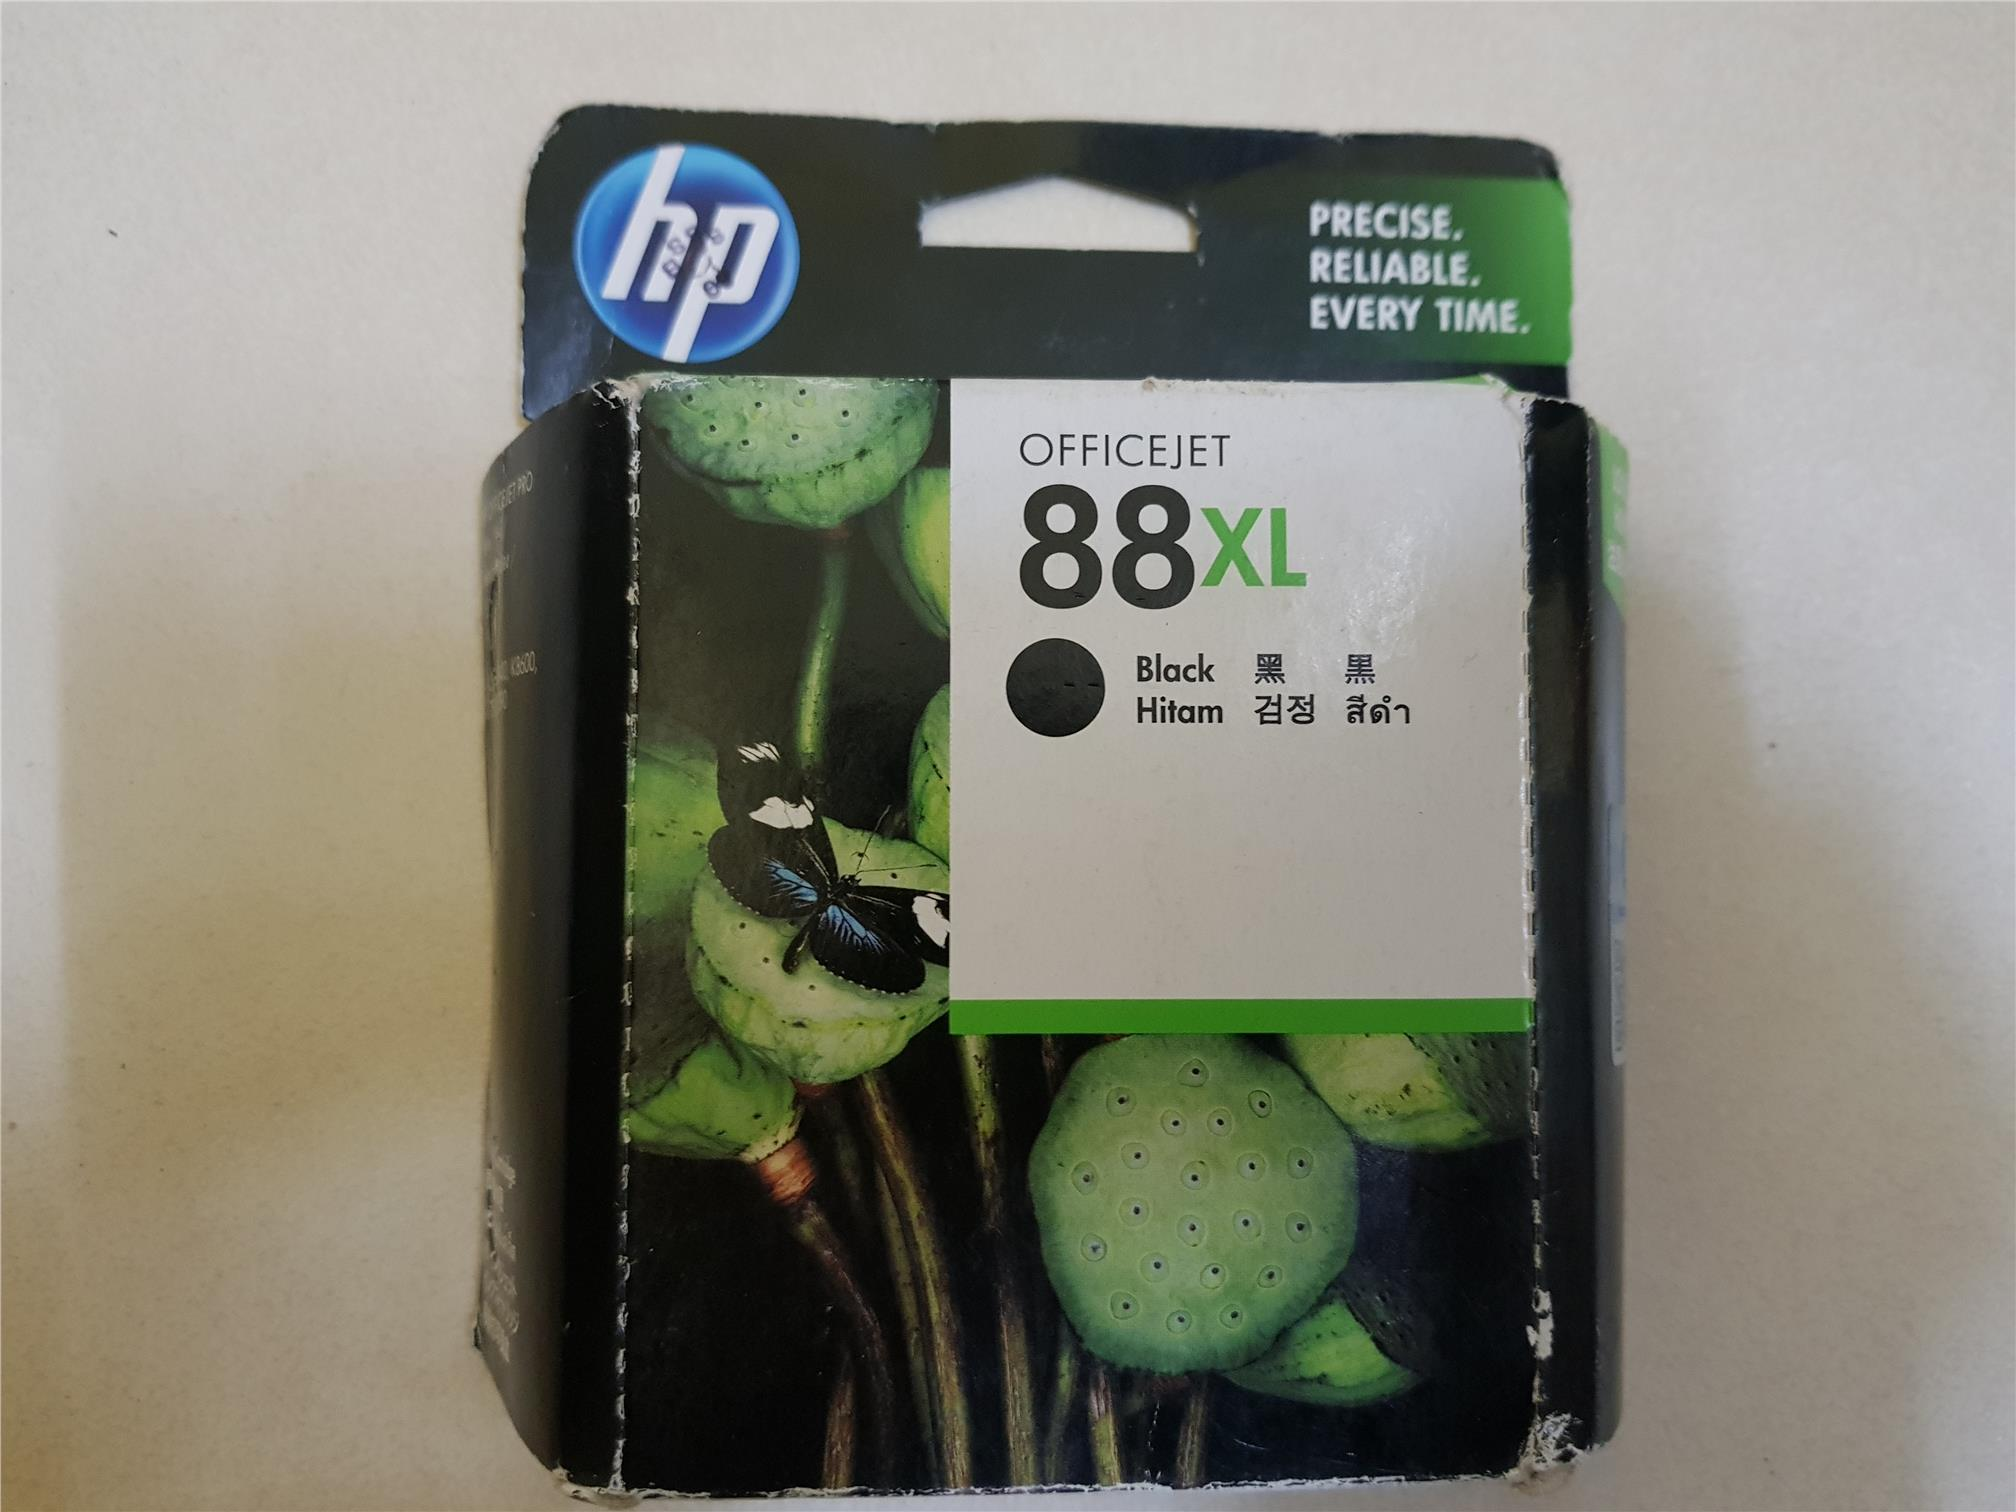 HP 88XL Black Ink C9396A (Genuine) K5400 K550 K8600 Expire mac 2017